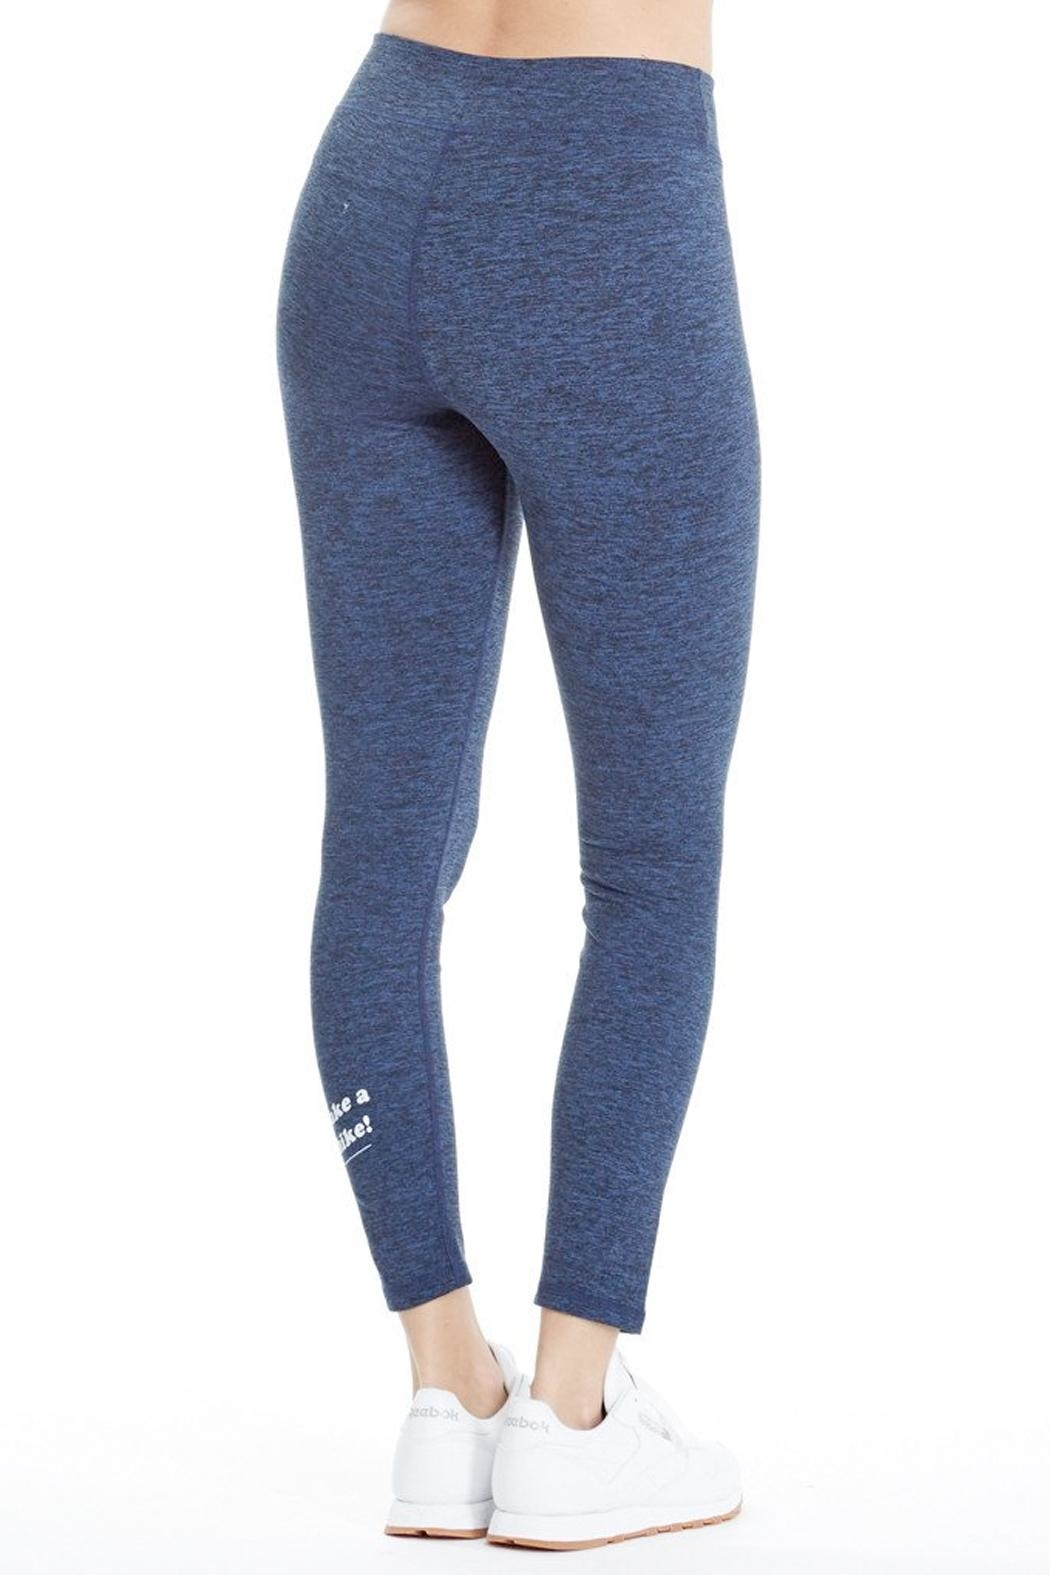 good hYouman Blue Logan Legging - Front Full Image